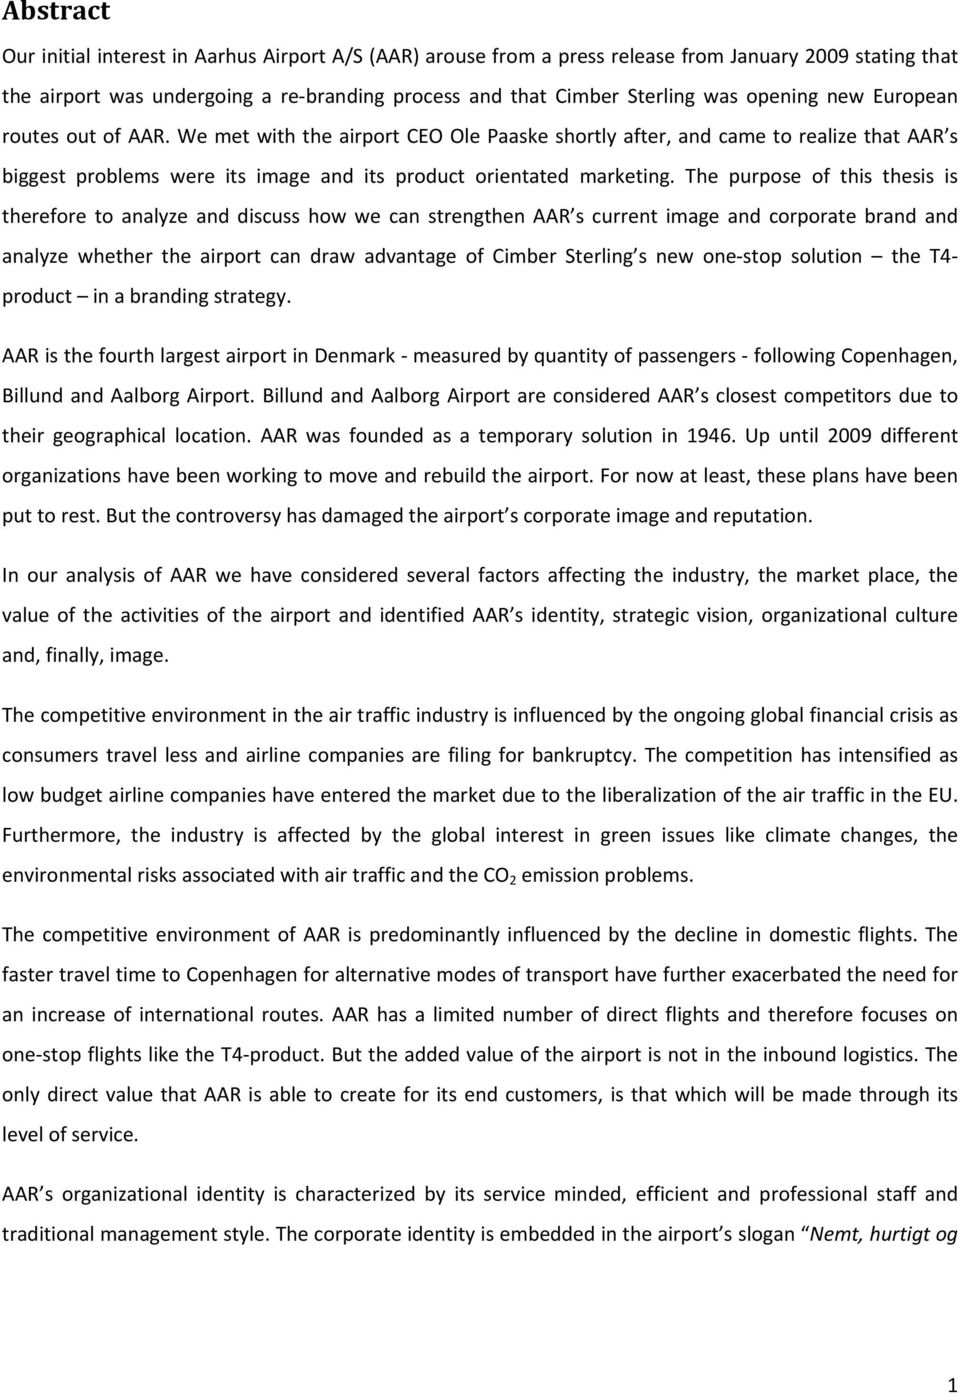 The purpose of this thesis is therefore to analyze and discuss how we can strengthen AAR s current image and corporate brand and analyze whether the airport can draw advantage of Cimber Sterling s